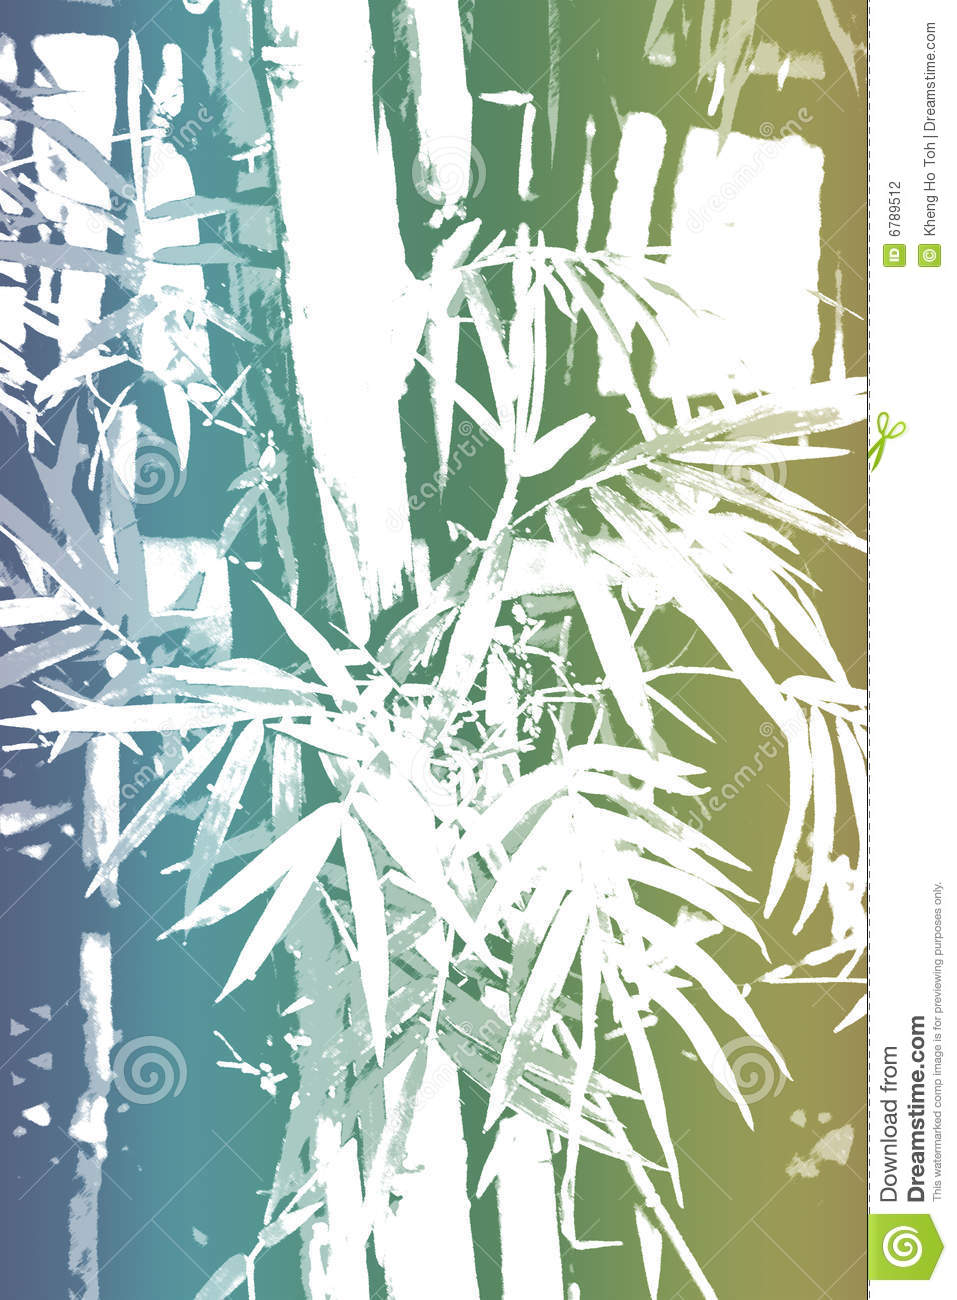 bamboo asian abstract background wallpaper stock illustration